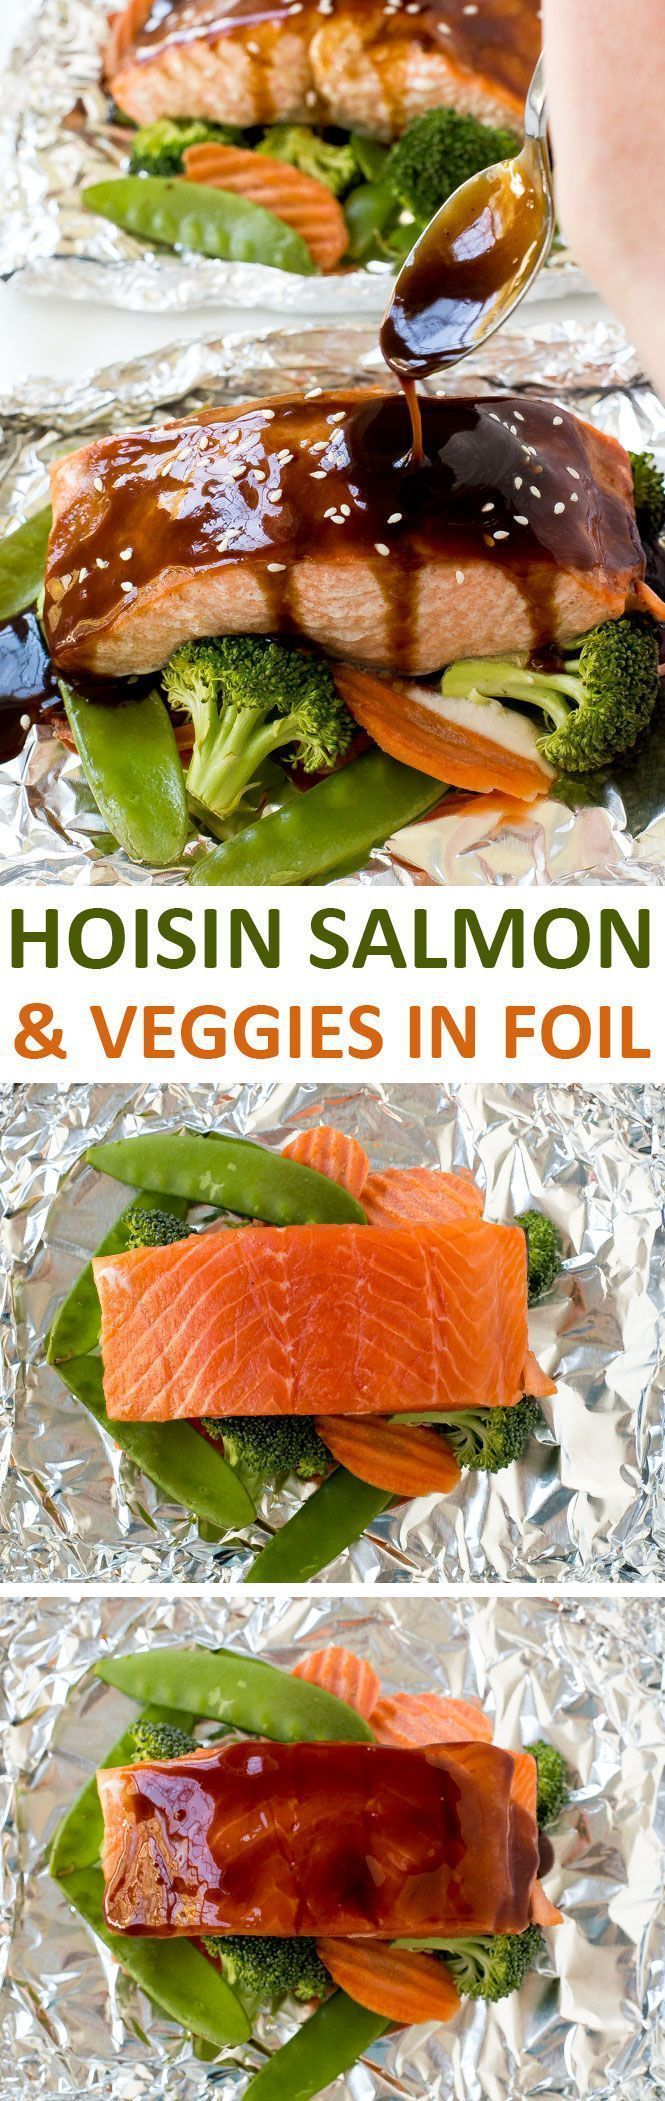 Hoisin Glazed Salmon and Veggies in Foil